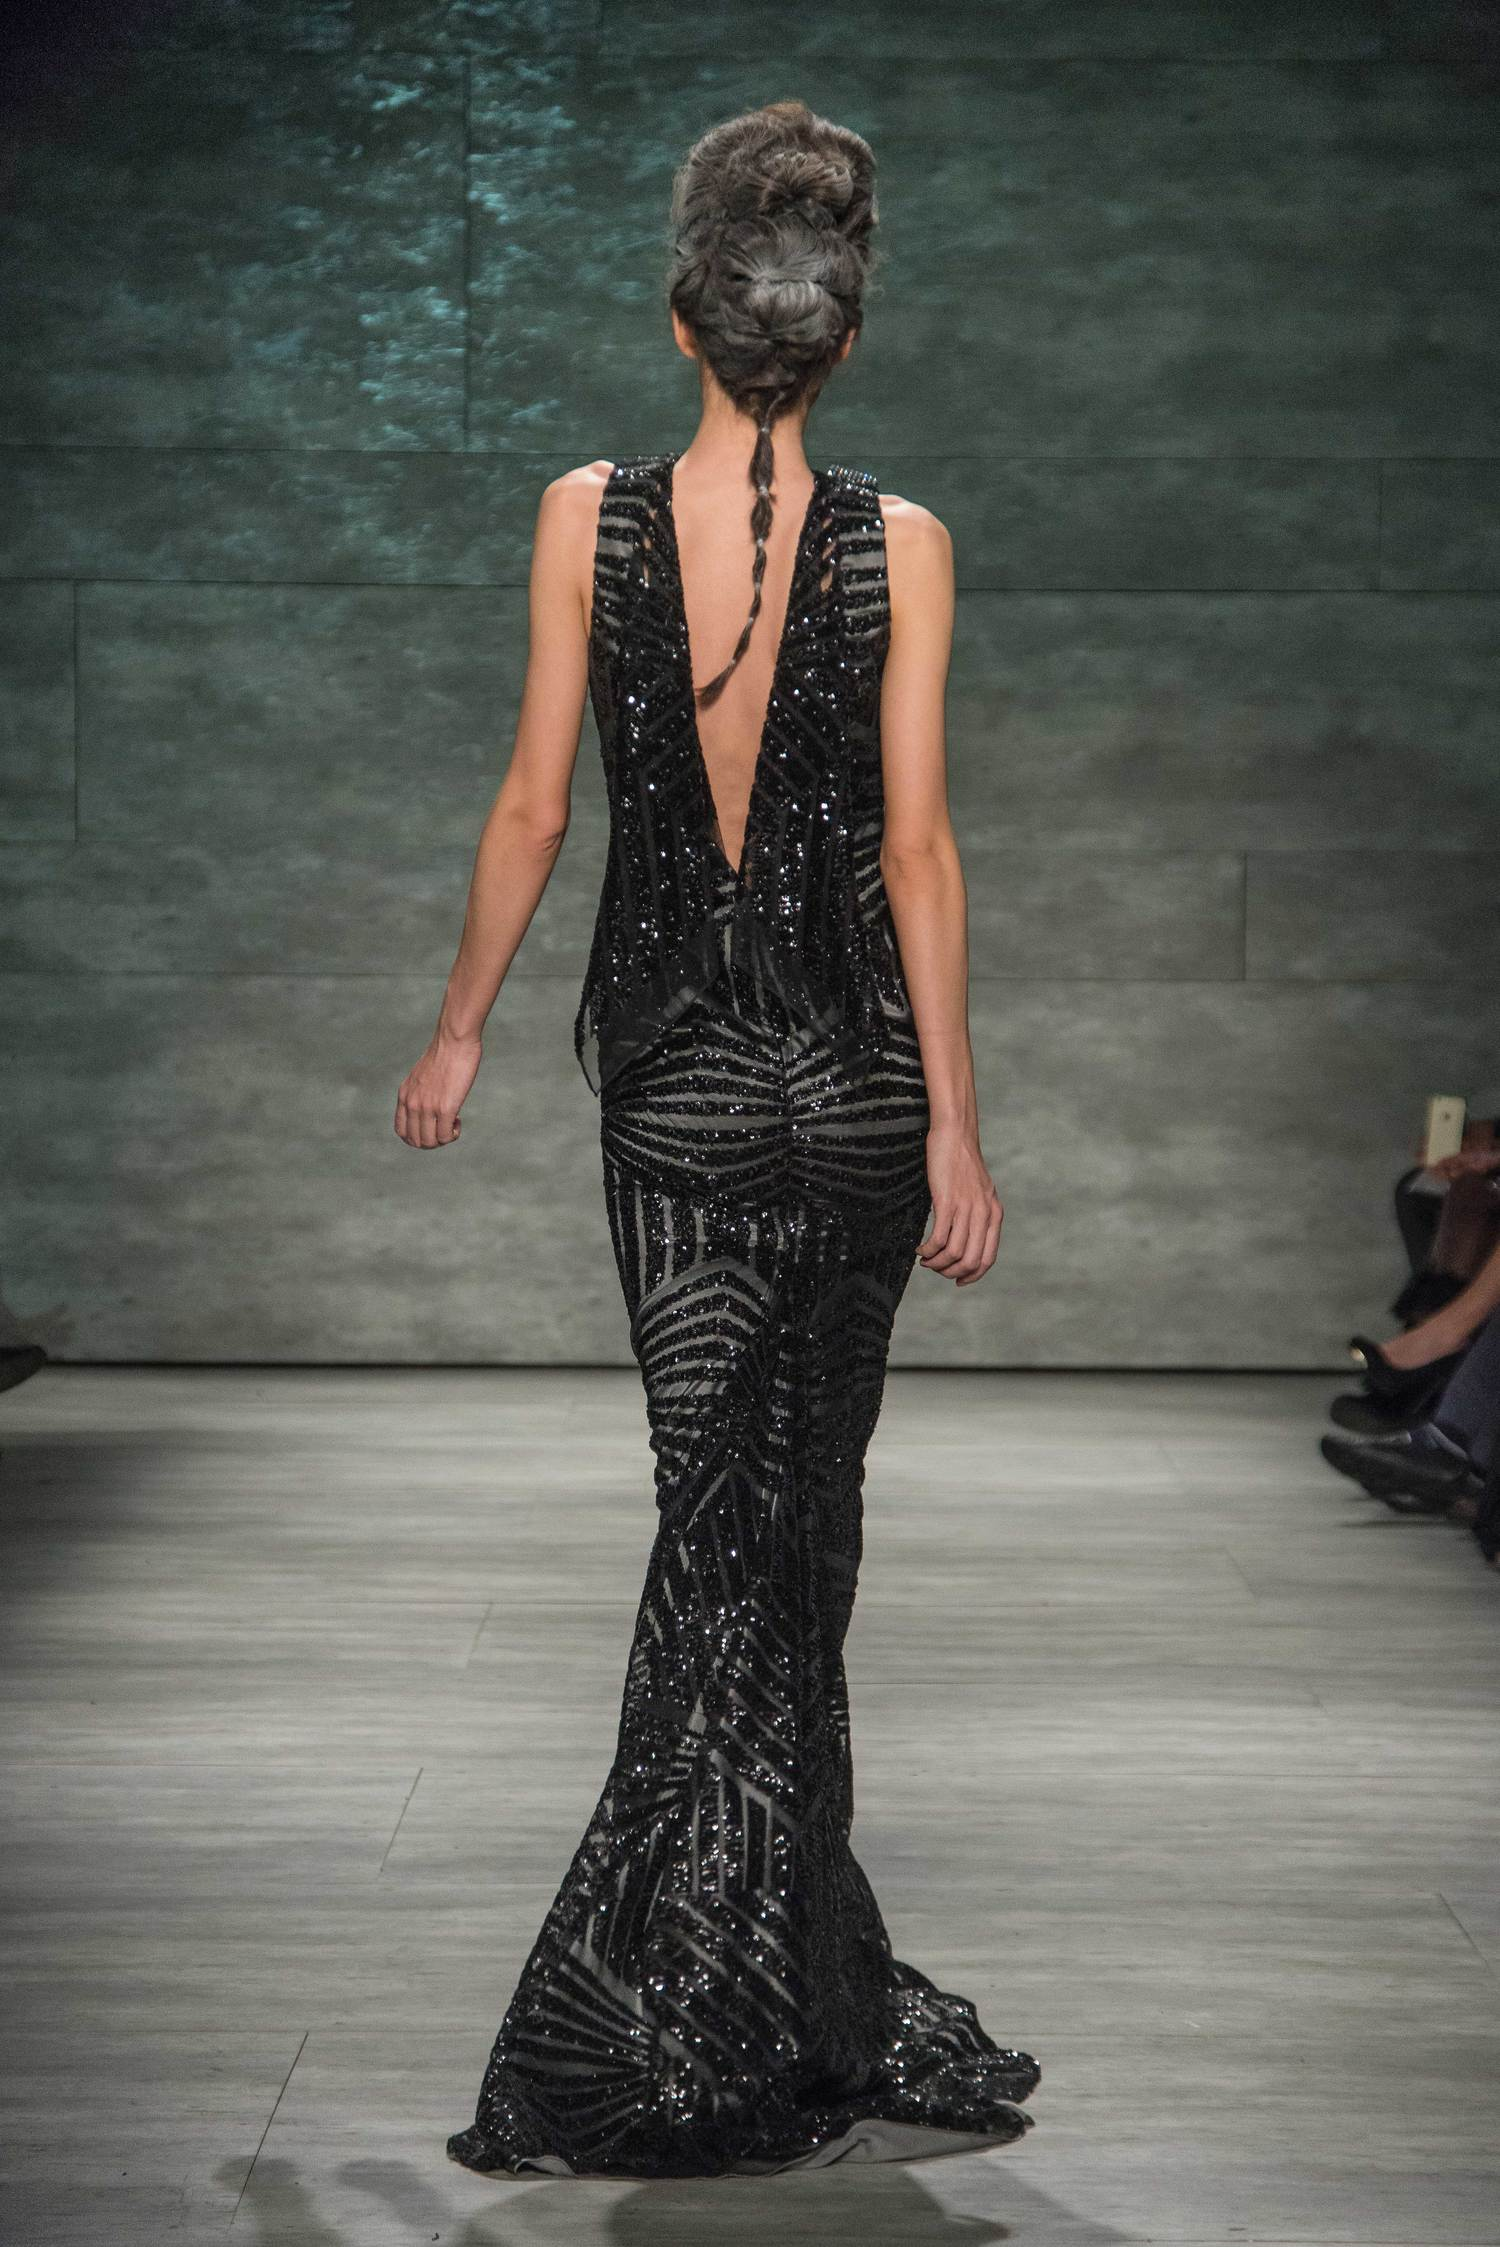 Black Art Deco Gown with Crystal Detail — Globa Moda